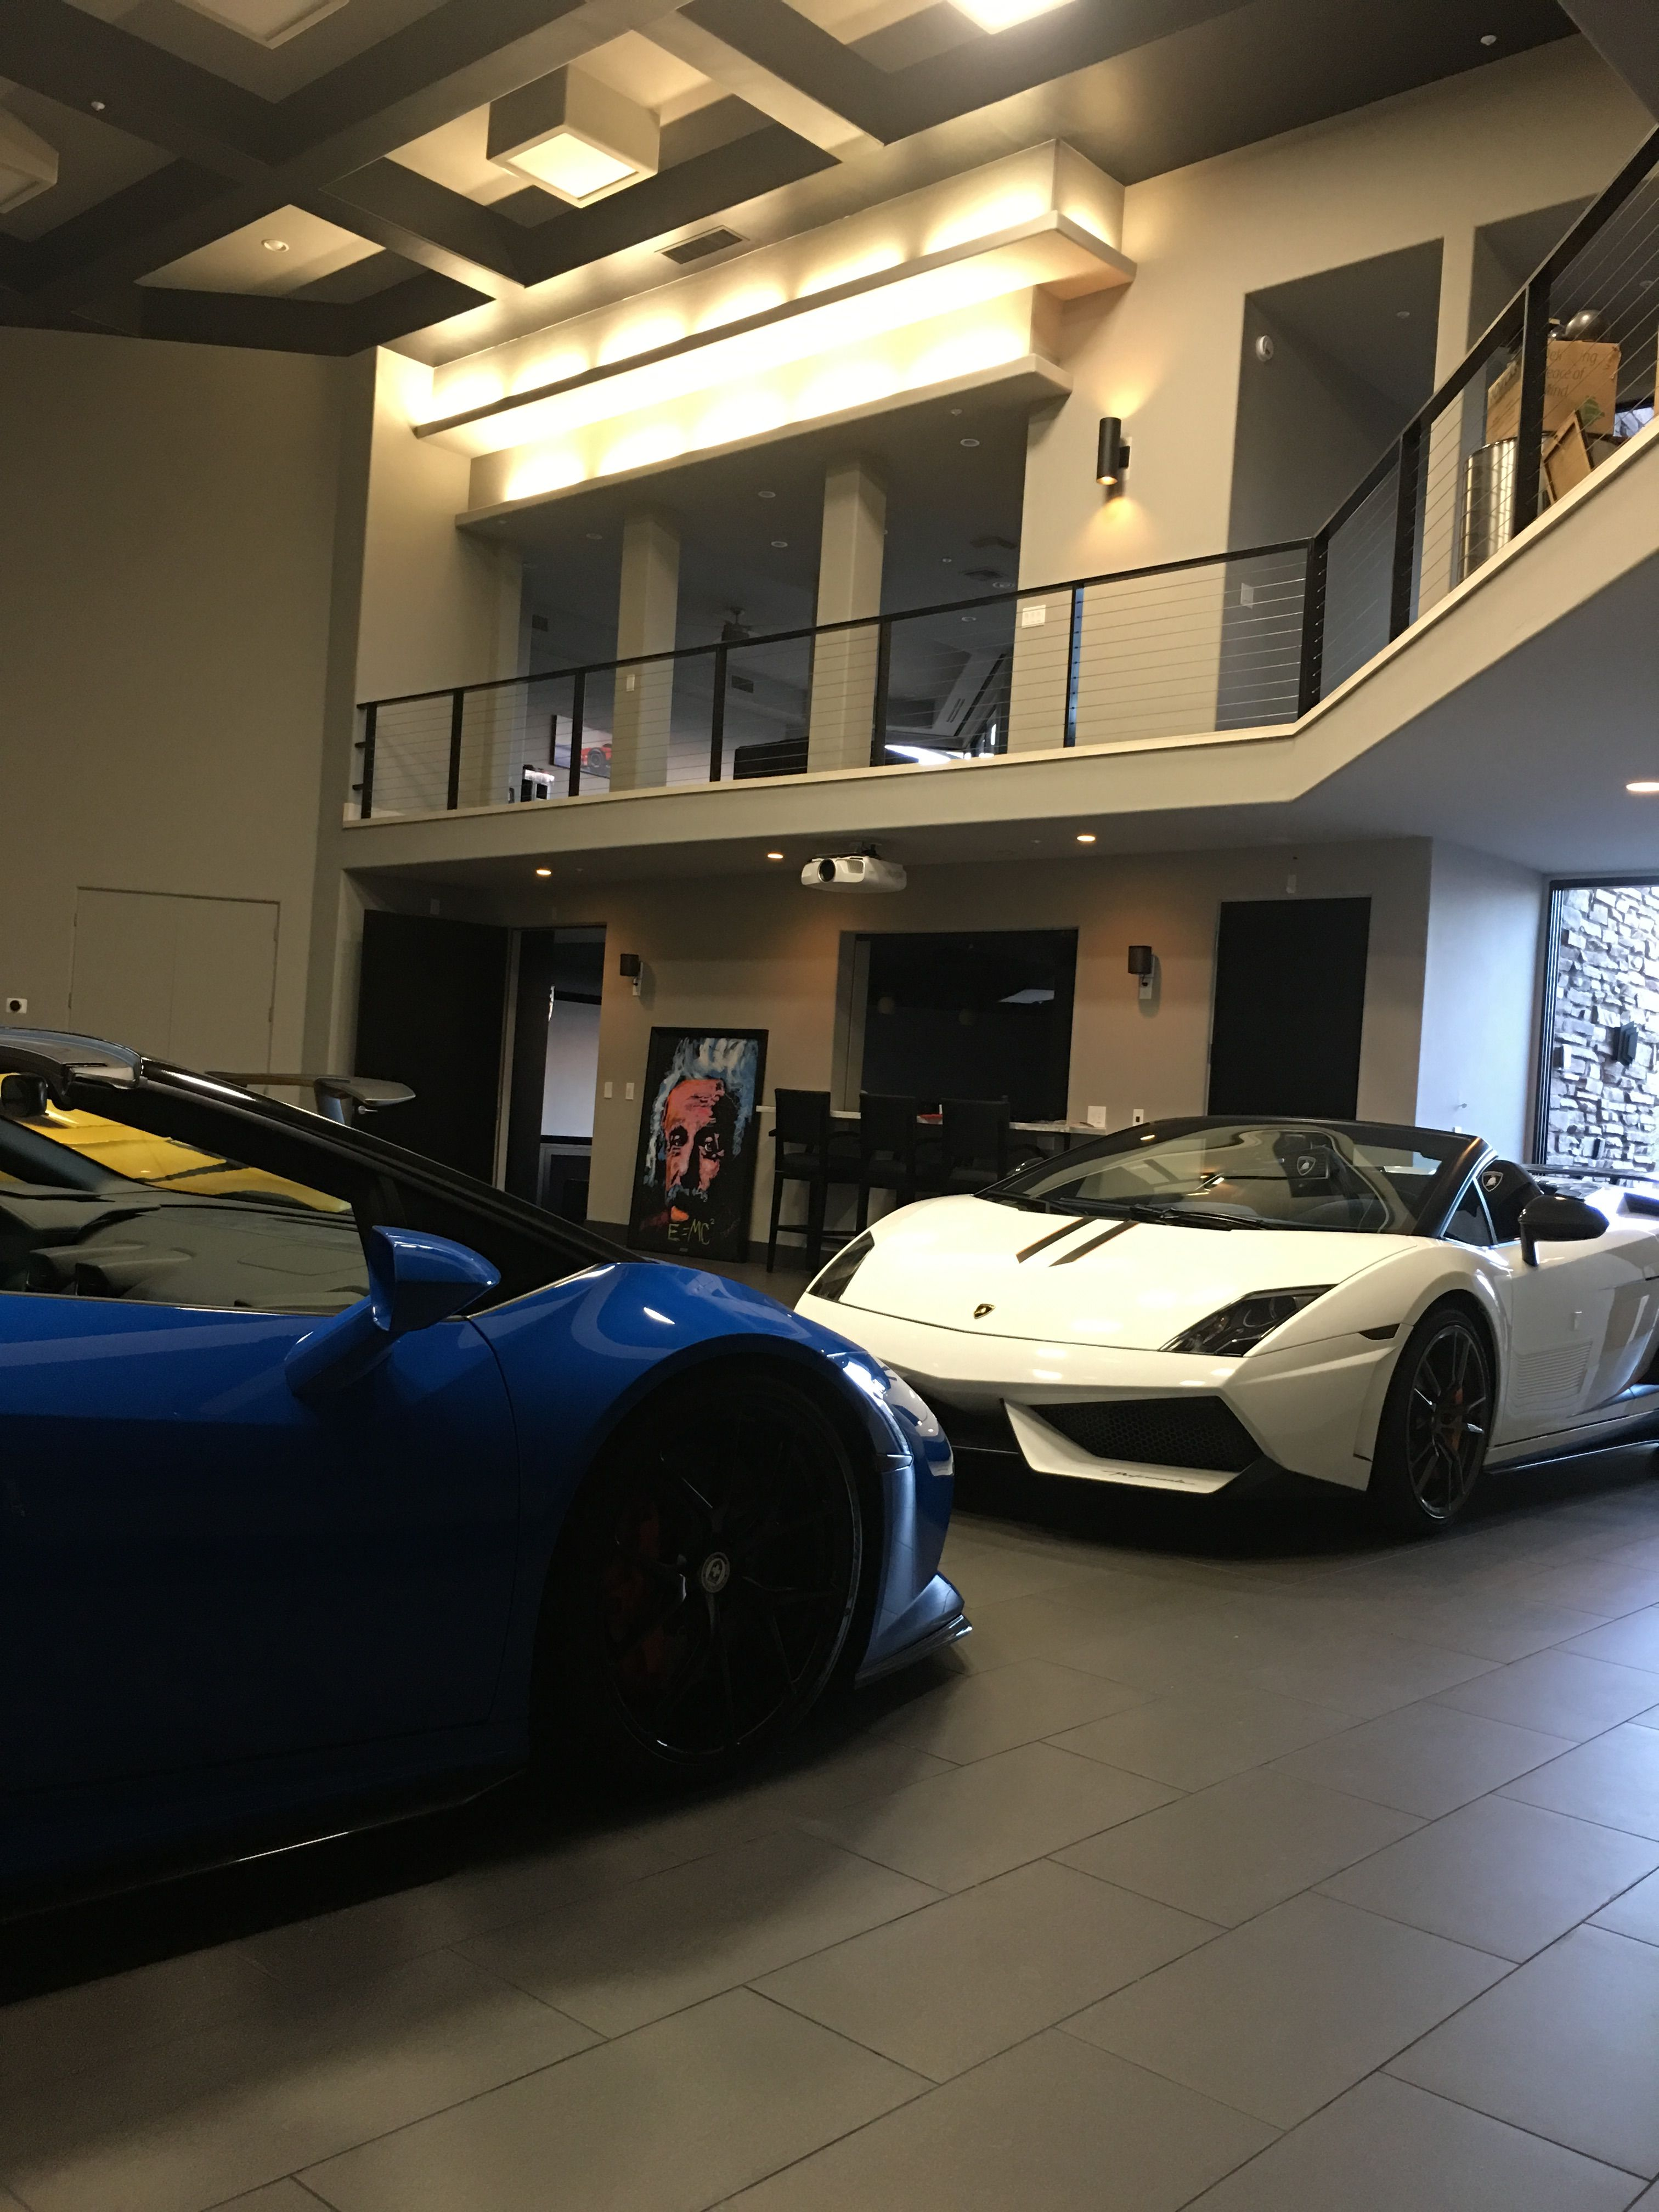 Luxury Garage Full Of Lamborghini S With An Office Loft And